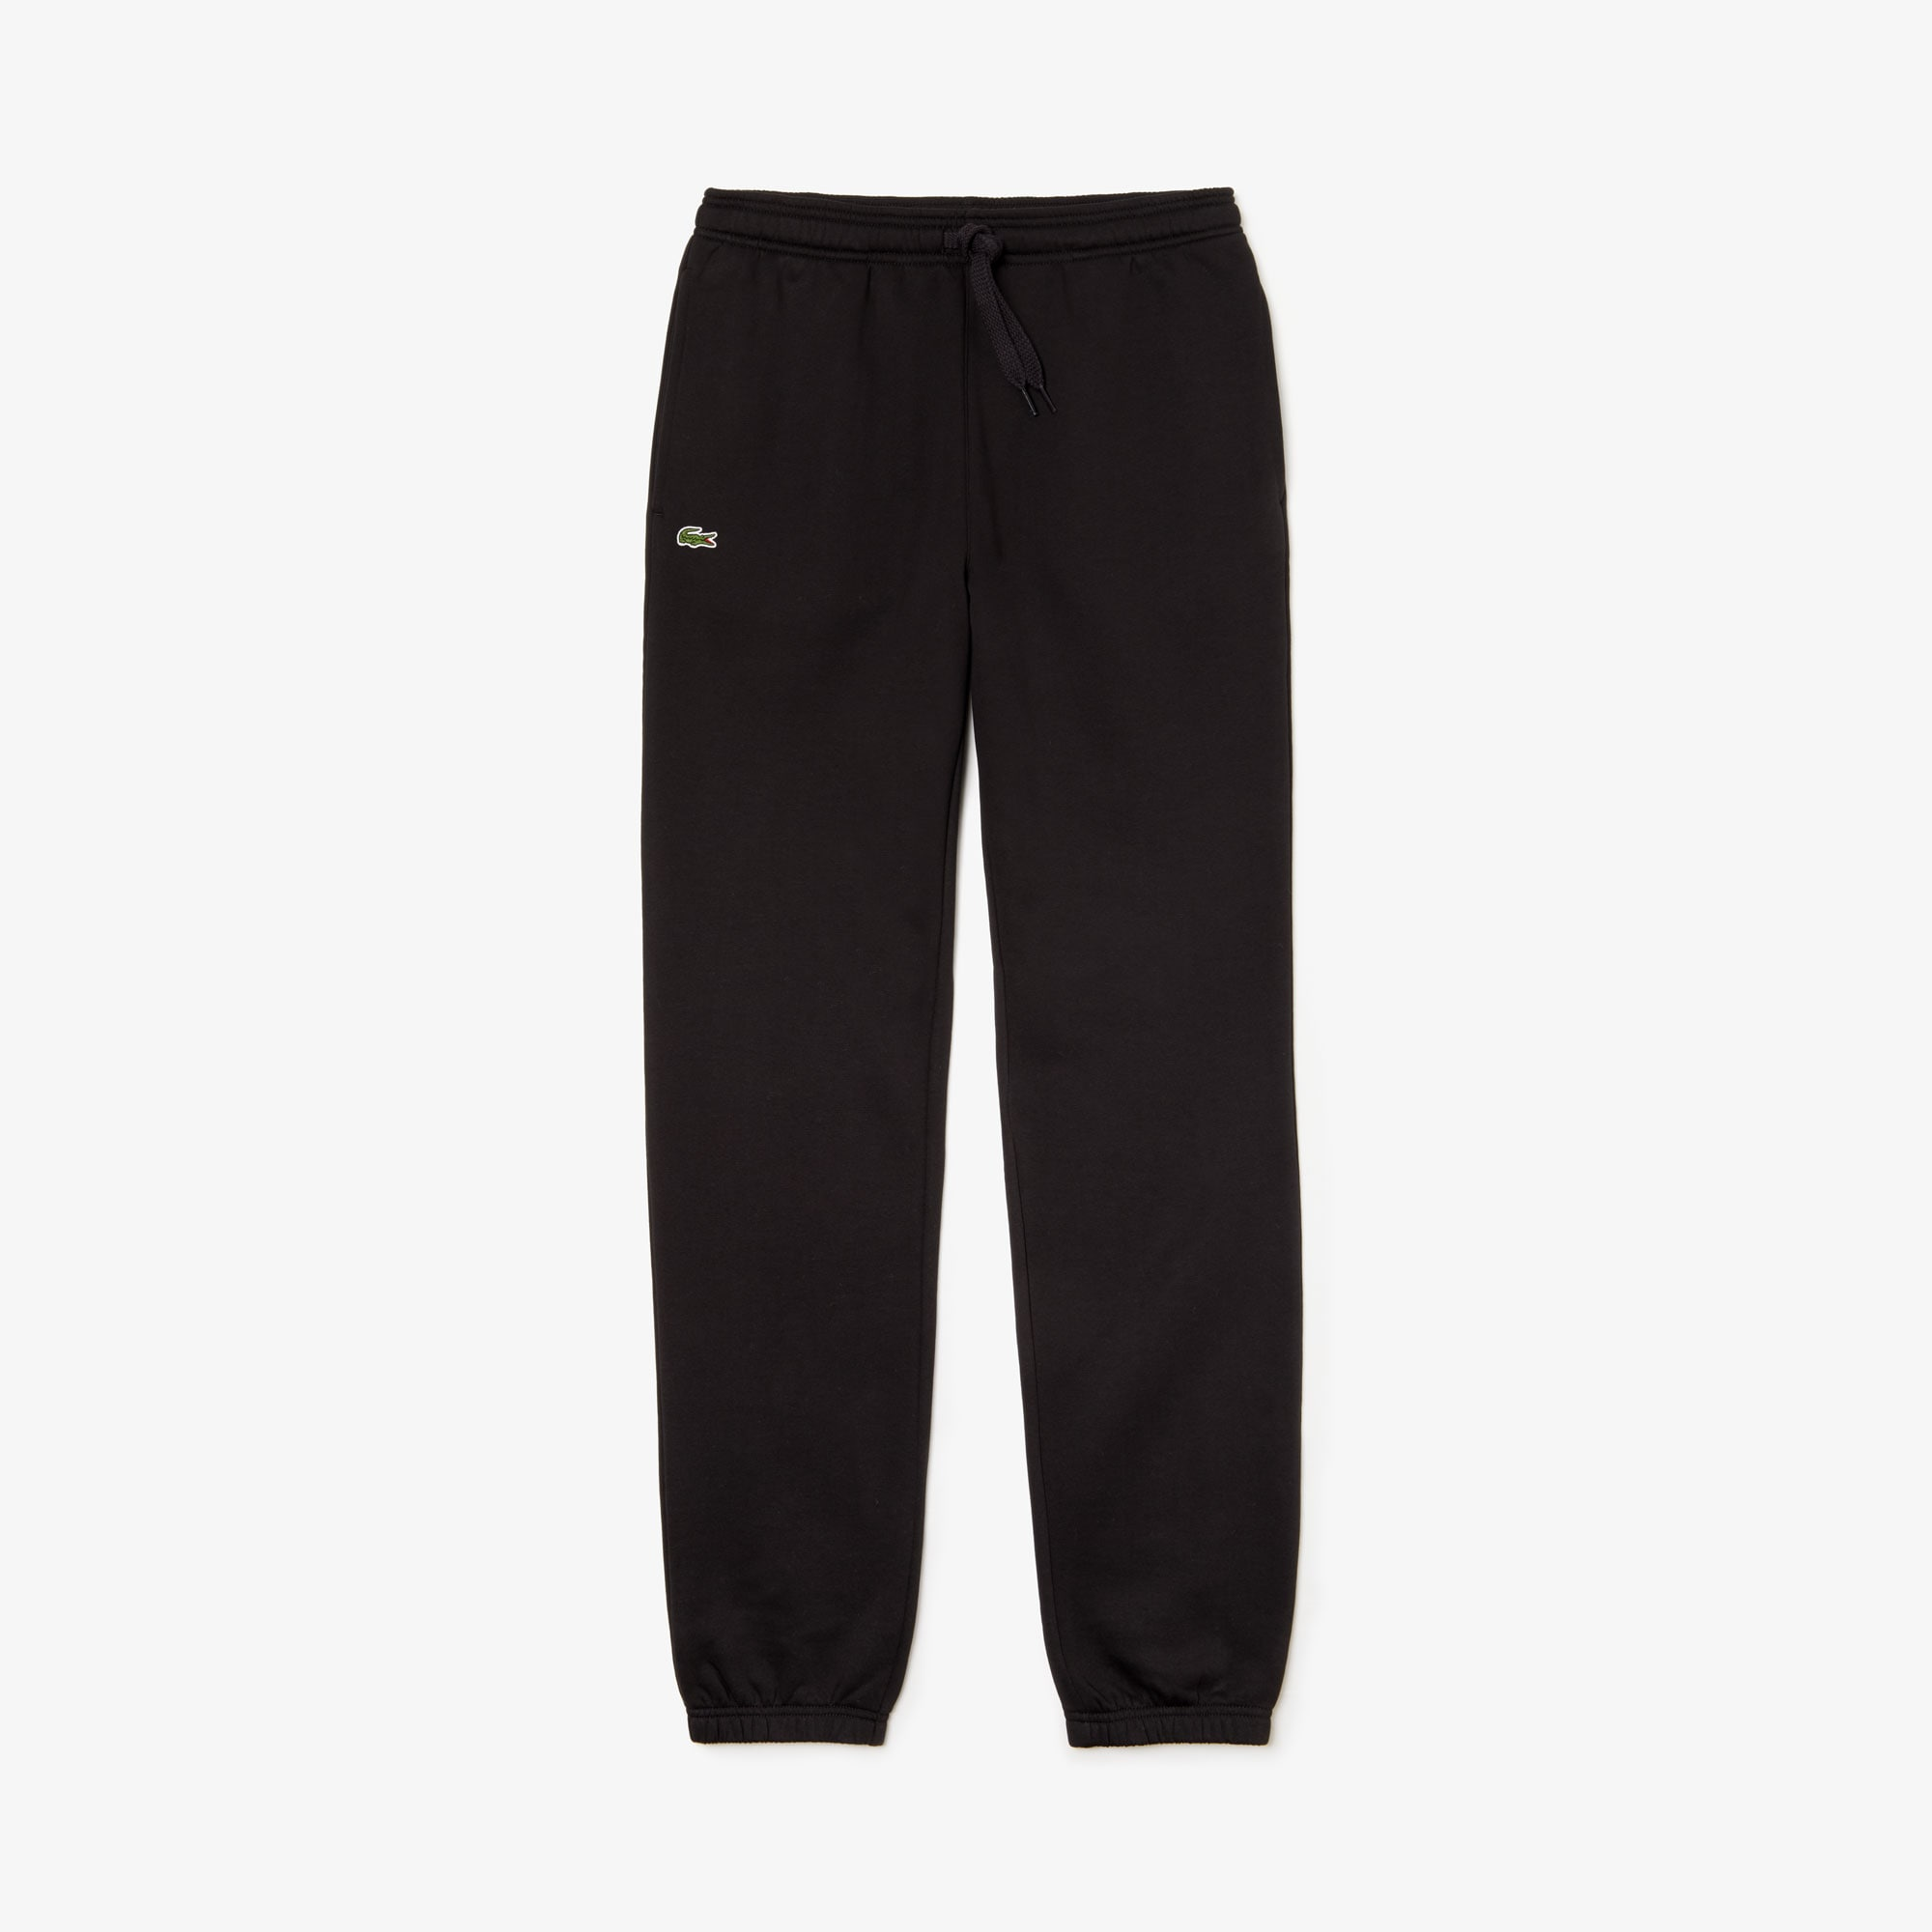 Men's Lacoste SPORT Tennis trackpants in fleece